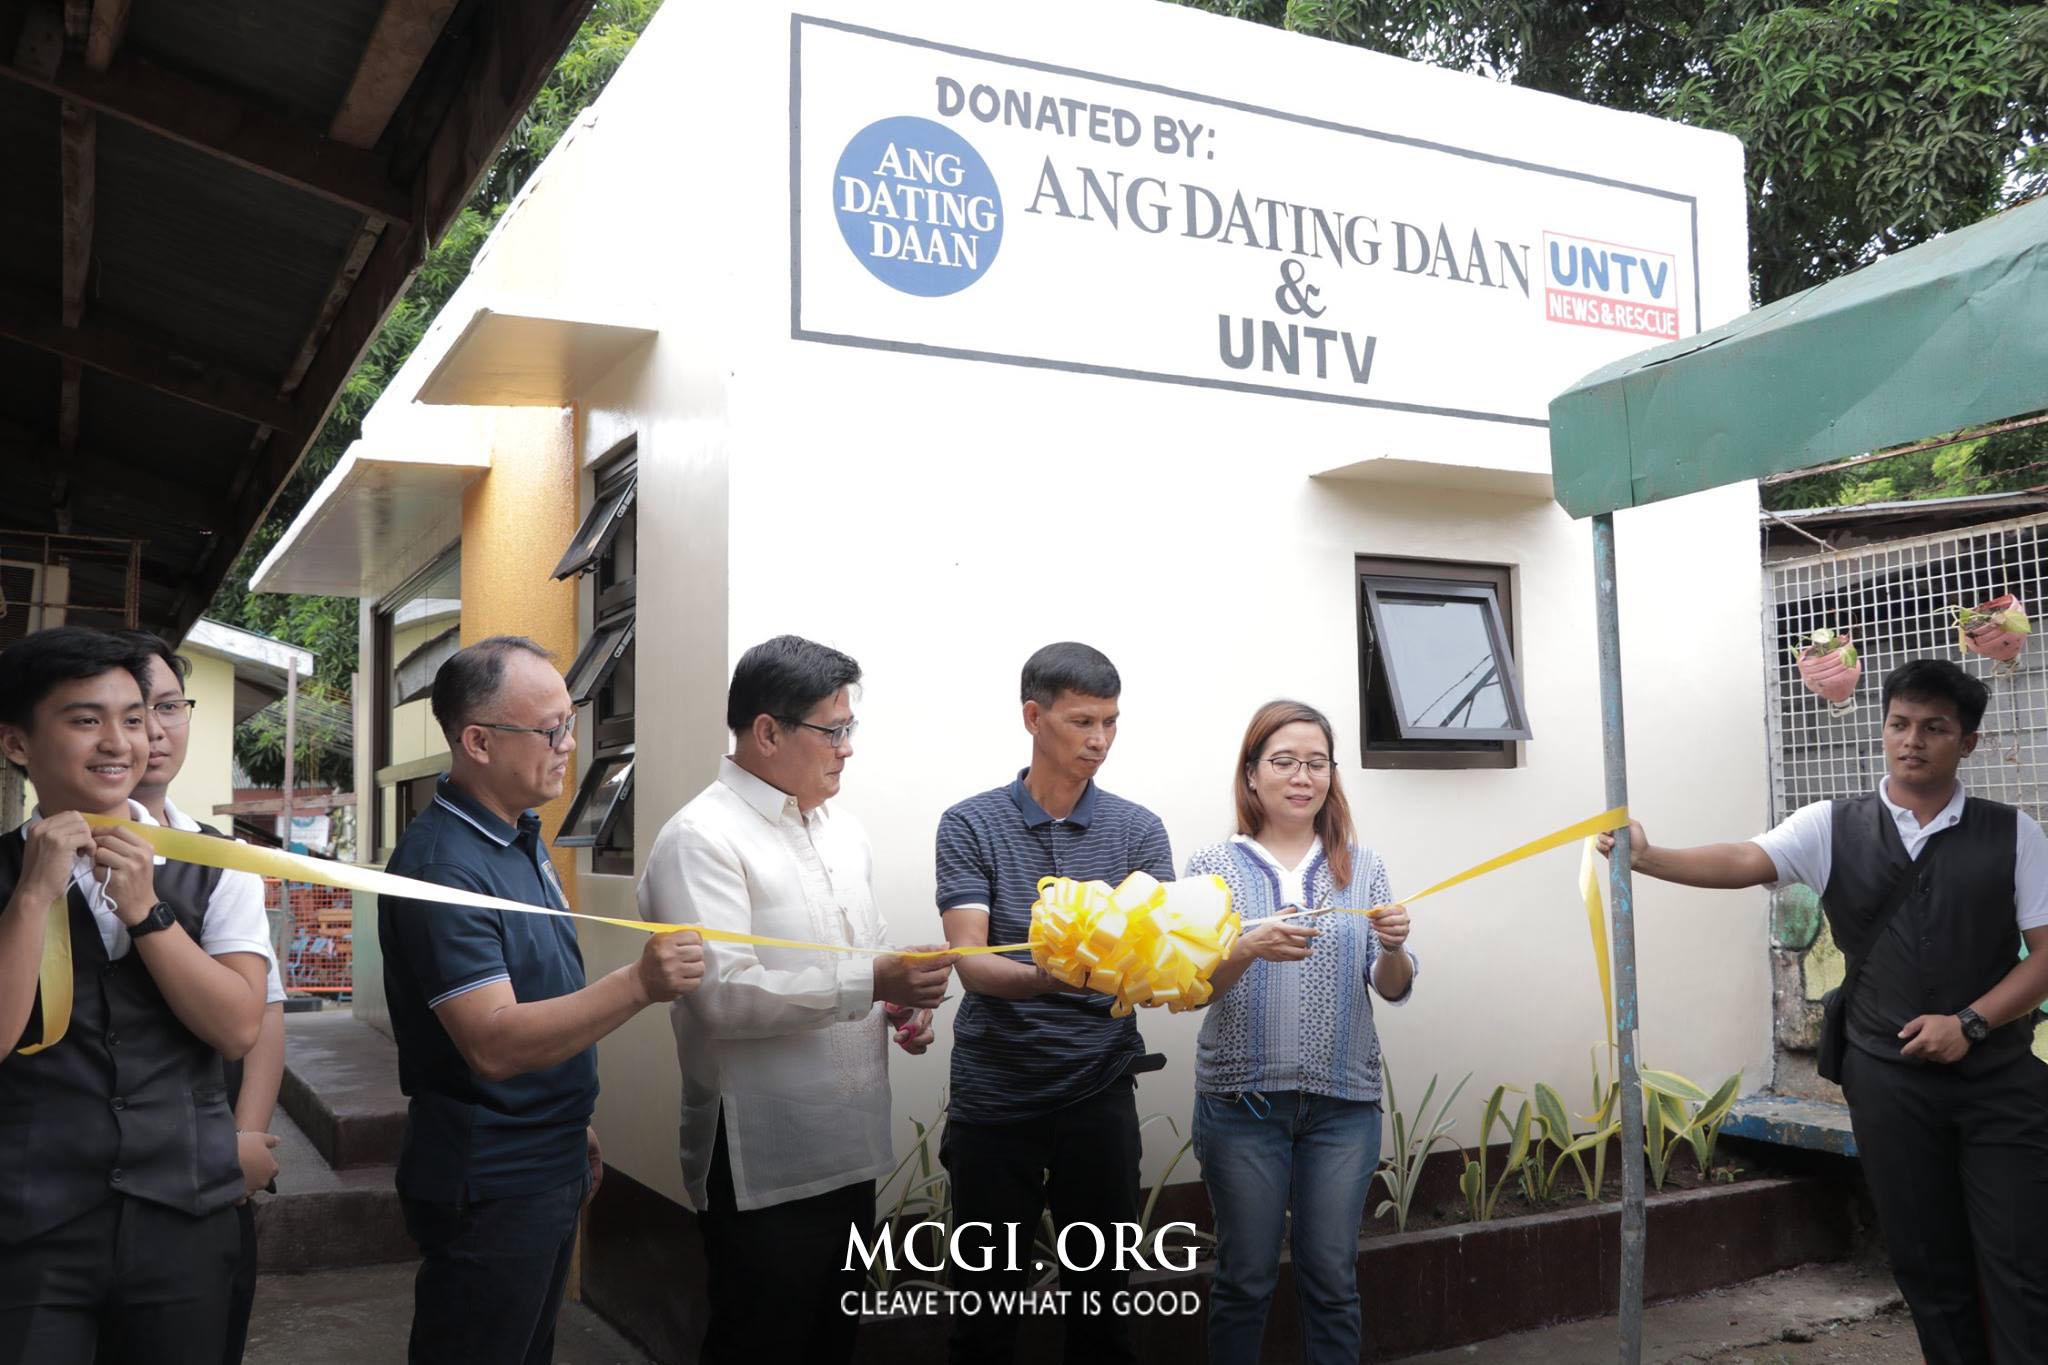 MCGI and UNTV Donate School Canteen to Calumpang Elementary School, Ambulance to Brgy. Calumpang